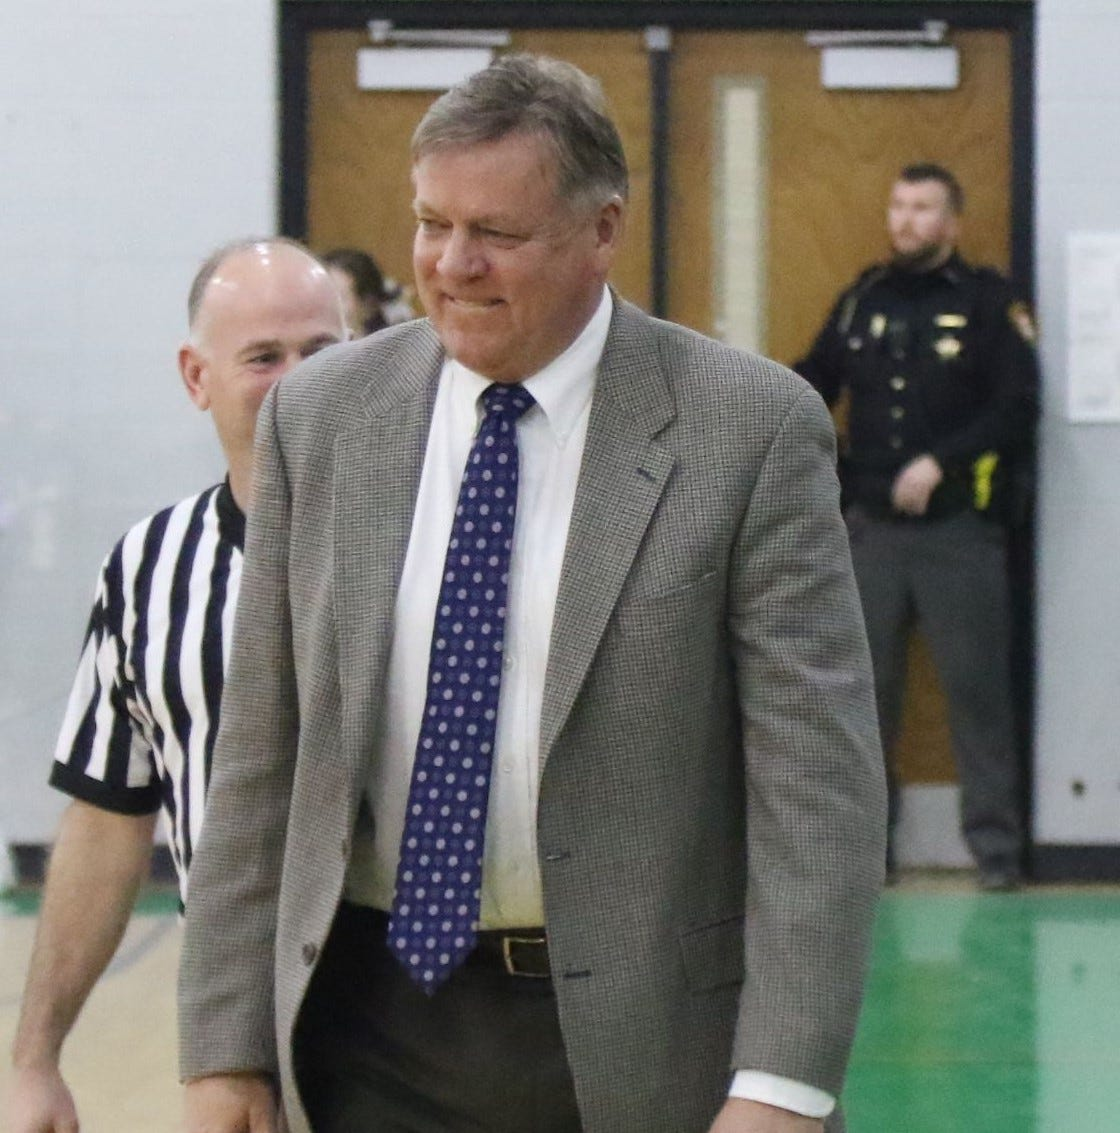 Ontario's Joe Balogh inducted to the Ohio High School Basketball Coaches Hall of Fame